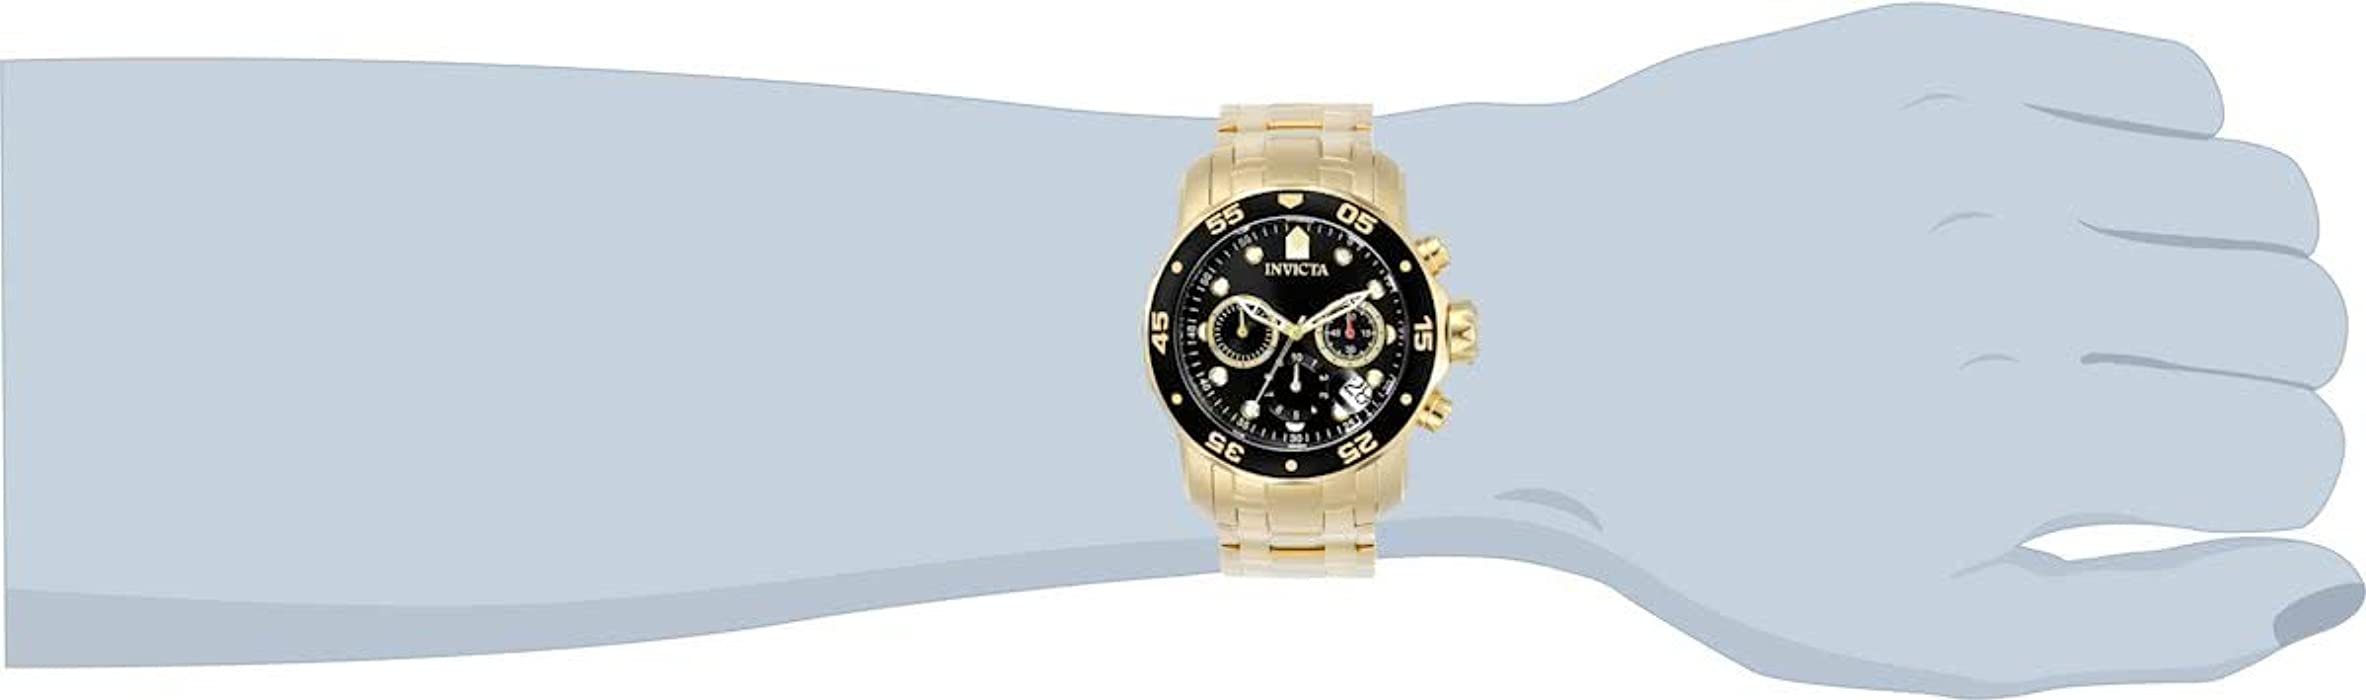 Invicta Men 0072 Pro Diver Collection Chronograph 18k GoldPlated Watch GoldBlack